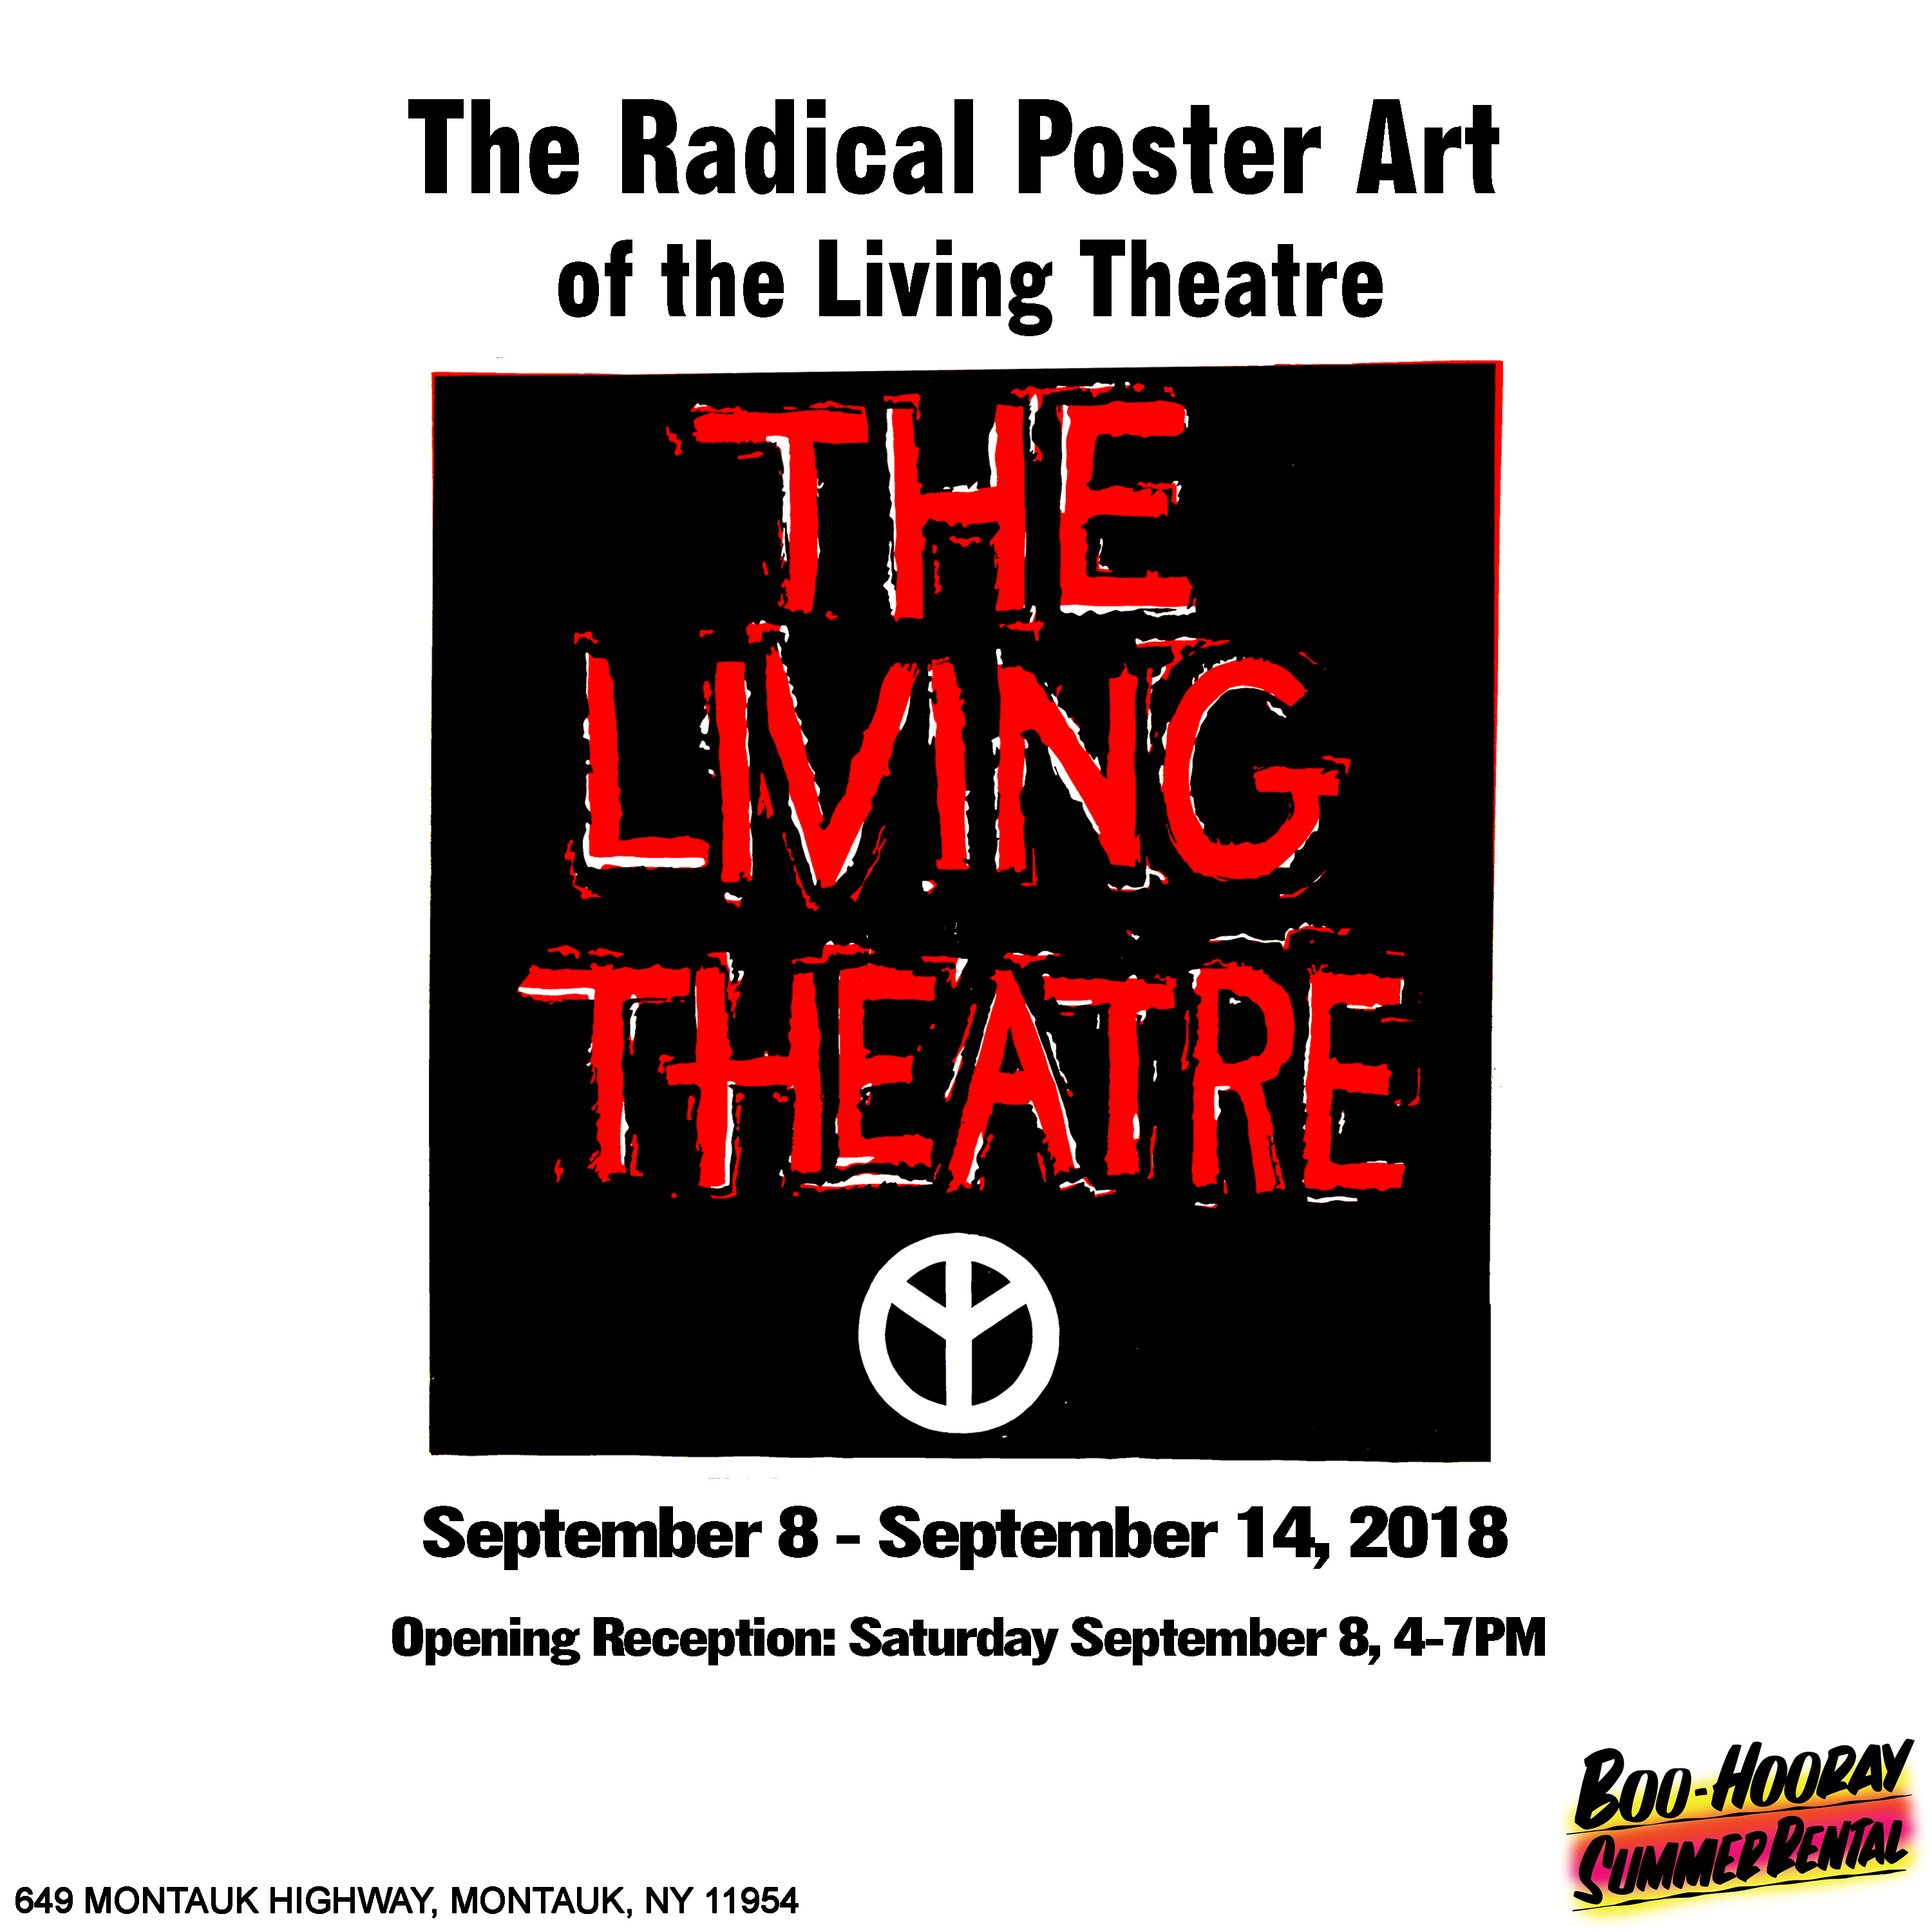 The Radical Poster Art of the Living Theatre